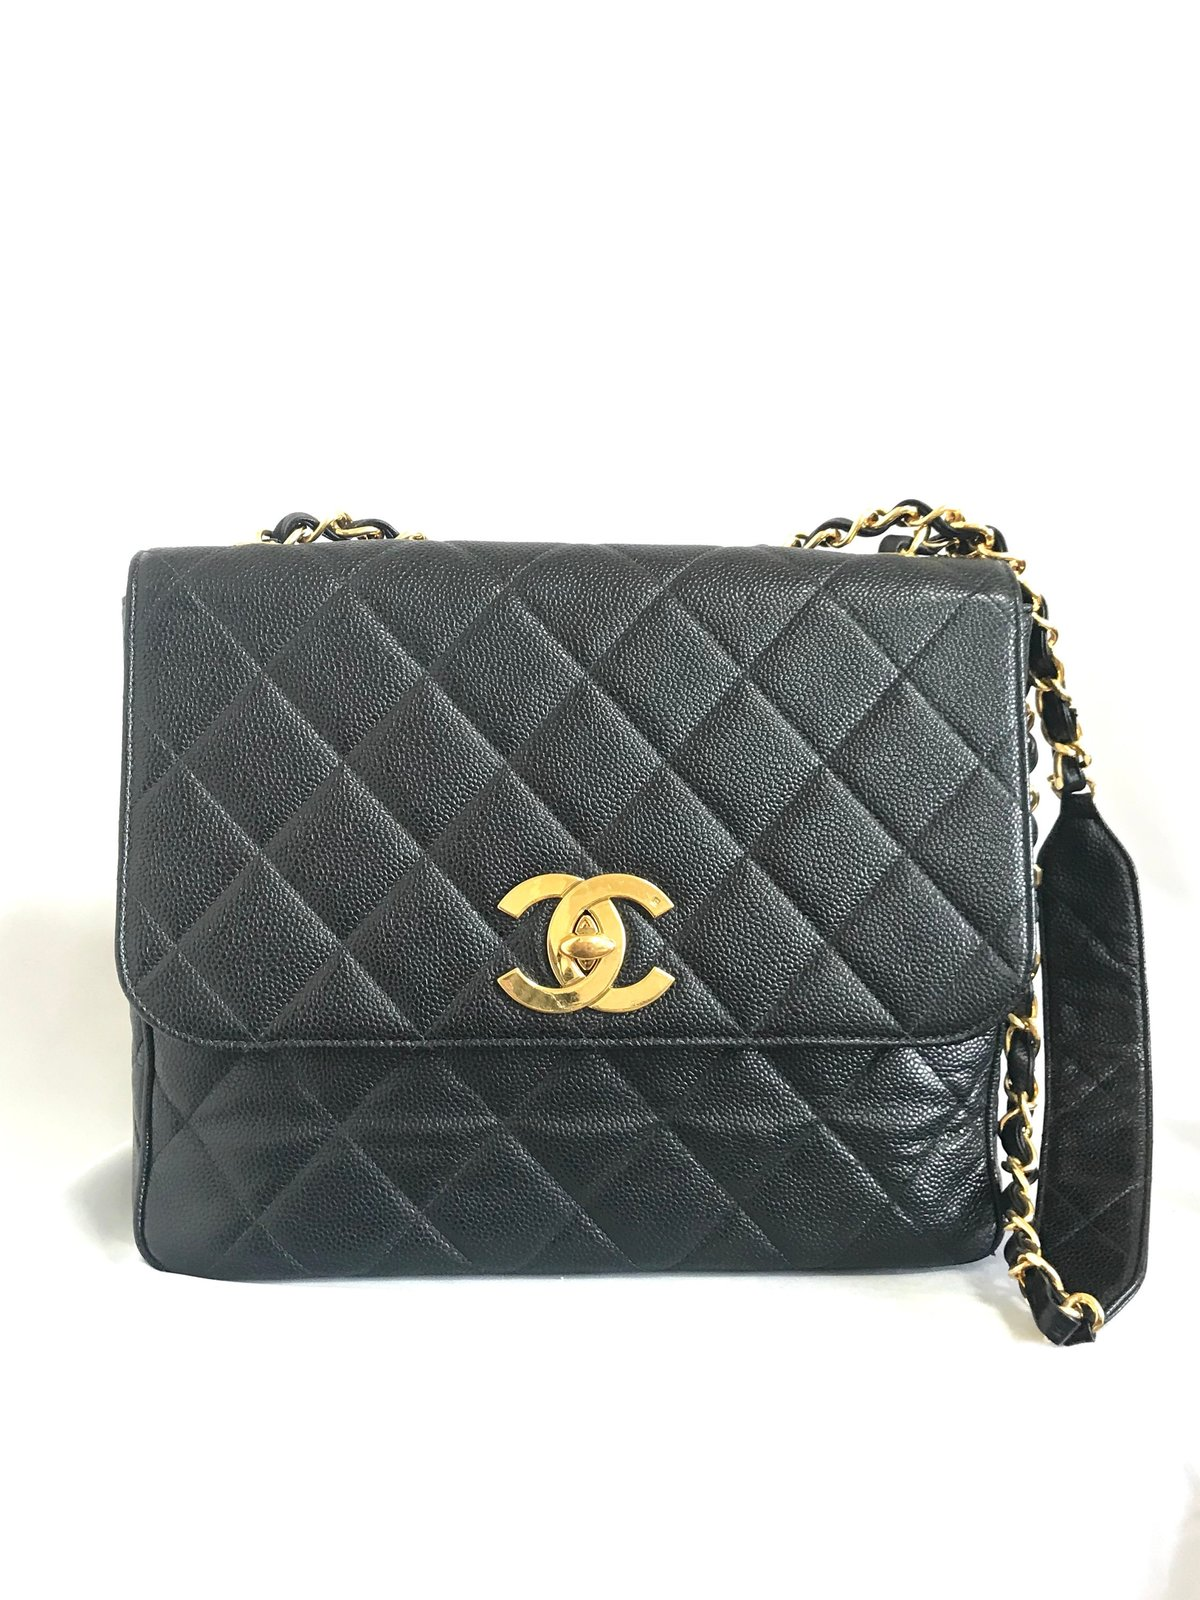 4c12febb3007a2 Vintage Chanel classic large black caviar and 50 similar items. Il  fullxfull.1519150917 26jq